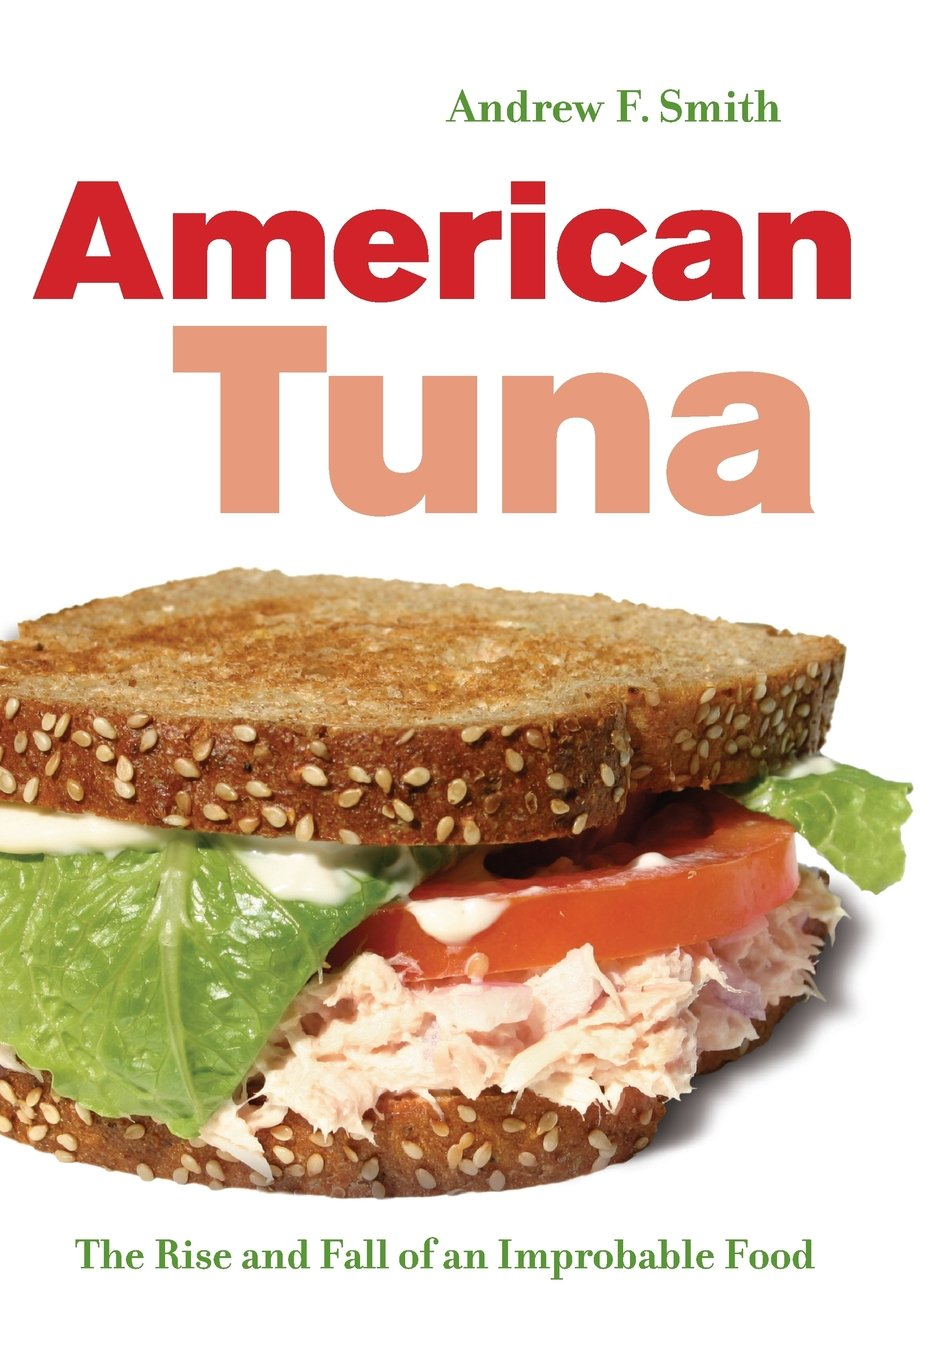 American tuna the rise and fall of an improbable food california american tuna the rise and fall of an improbable food california studies in food and culture andrew f smith 9780520261846 amazon books nvjuhfo Choice Image